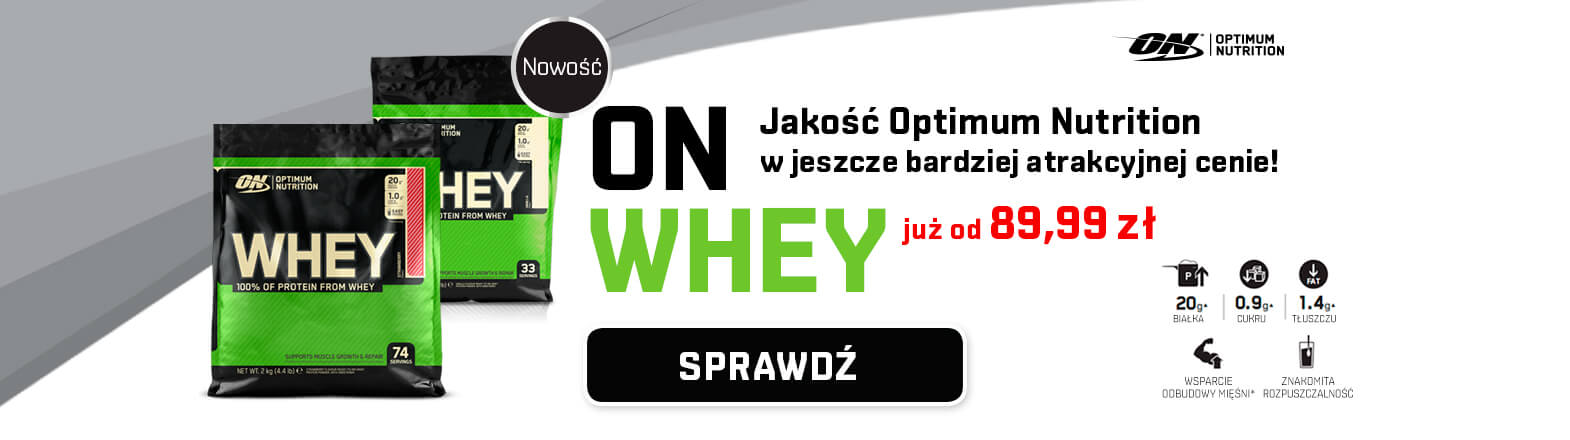 Optimum Nutrition Whey [Green Line]